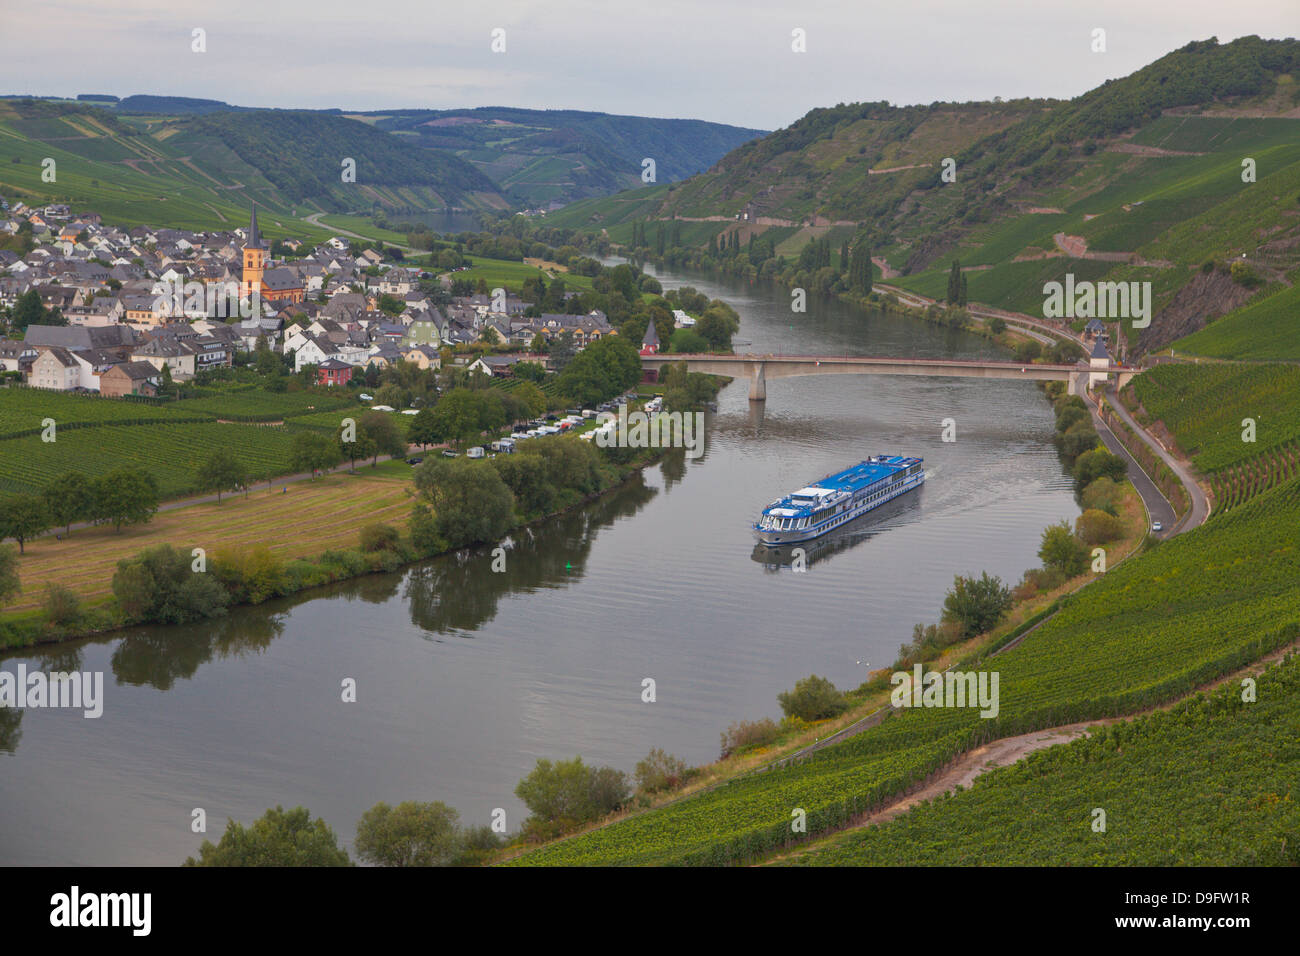 River cruise ship on the River Moselle, Germany - Stock Image